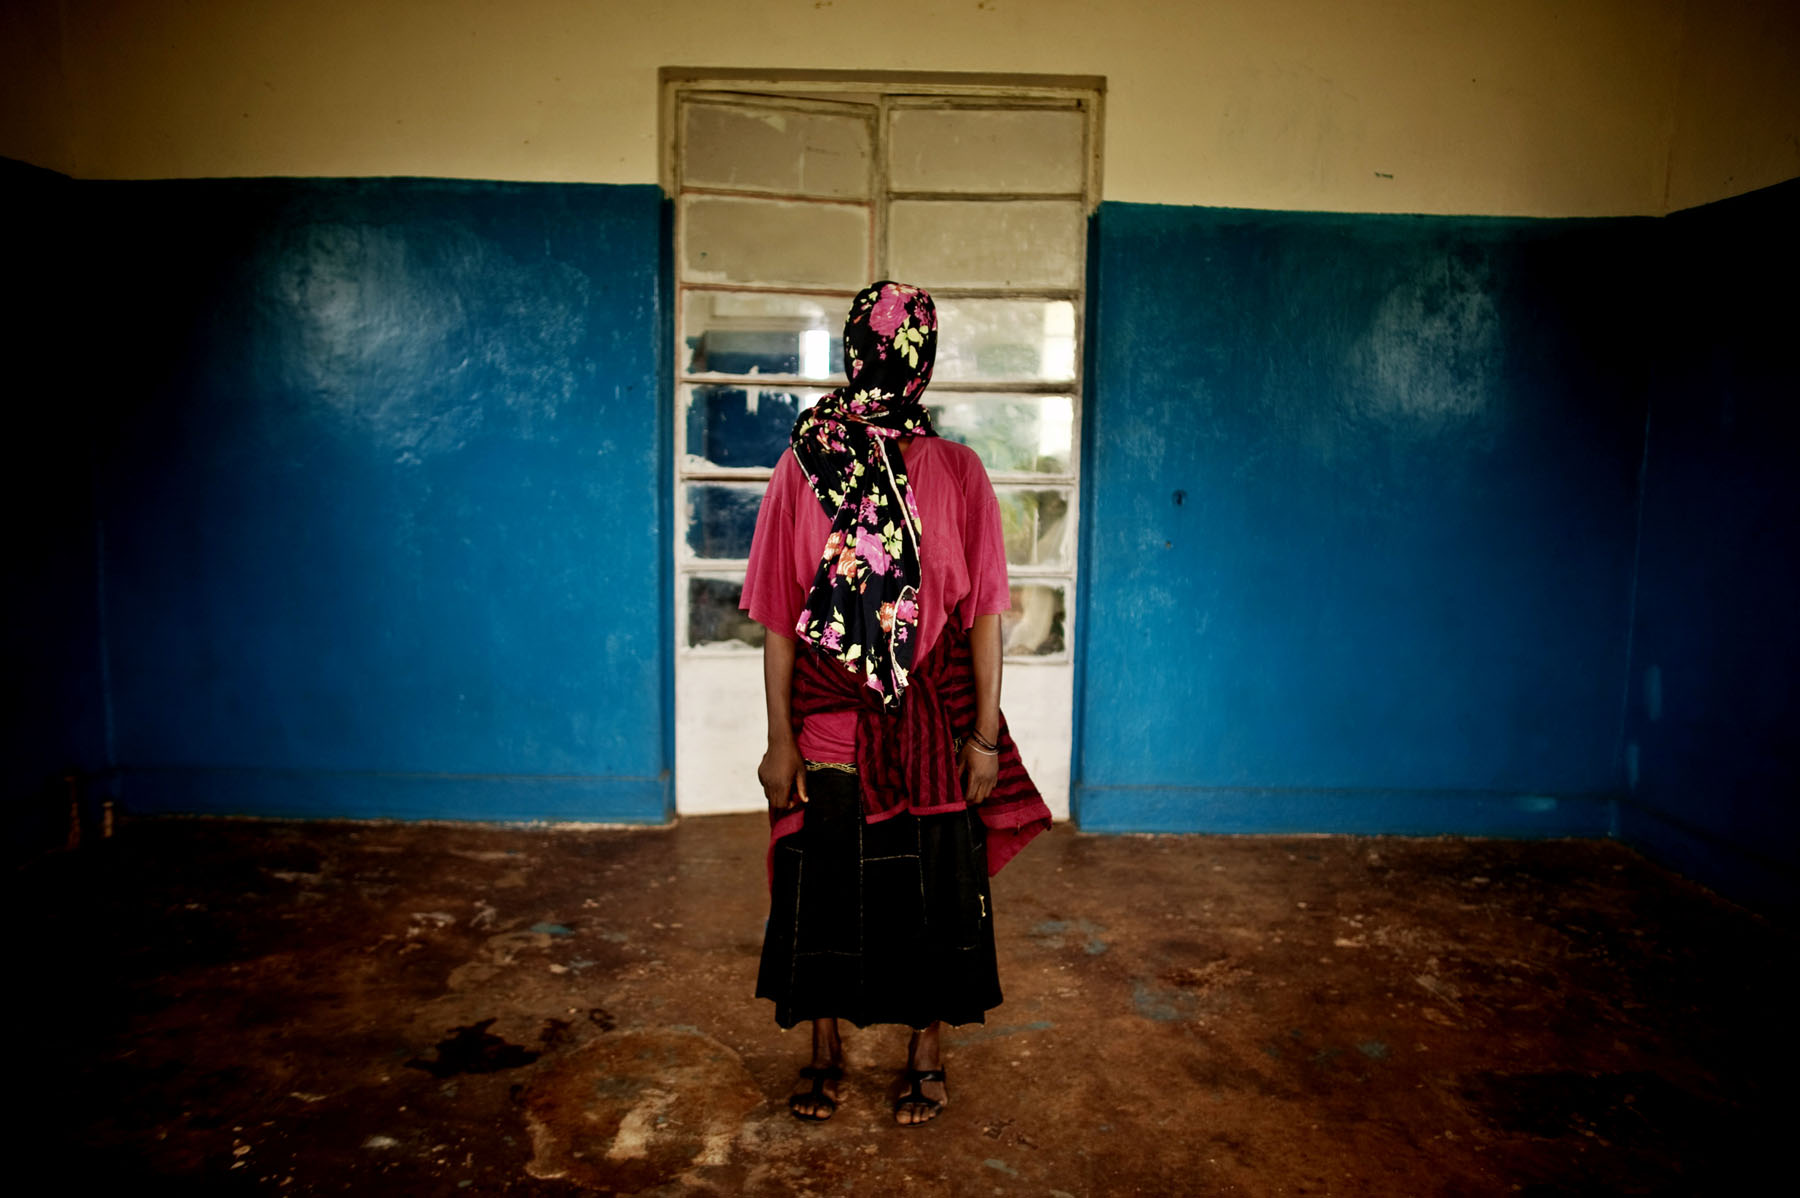 Despite fear of reprisals and of strong social stigma, more than fifty rape survivors traveled from Fizi to Baraka in order to testify against Kebibi and his men. On the condition of anonymity, dozens of women were eager to pose for portraits. Their courage and defiance was deeply moving.